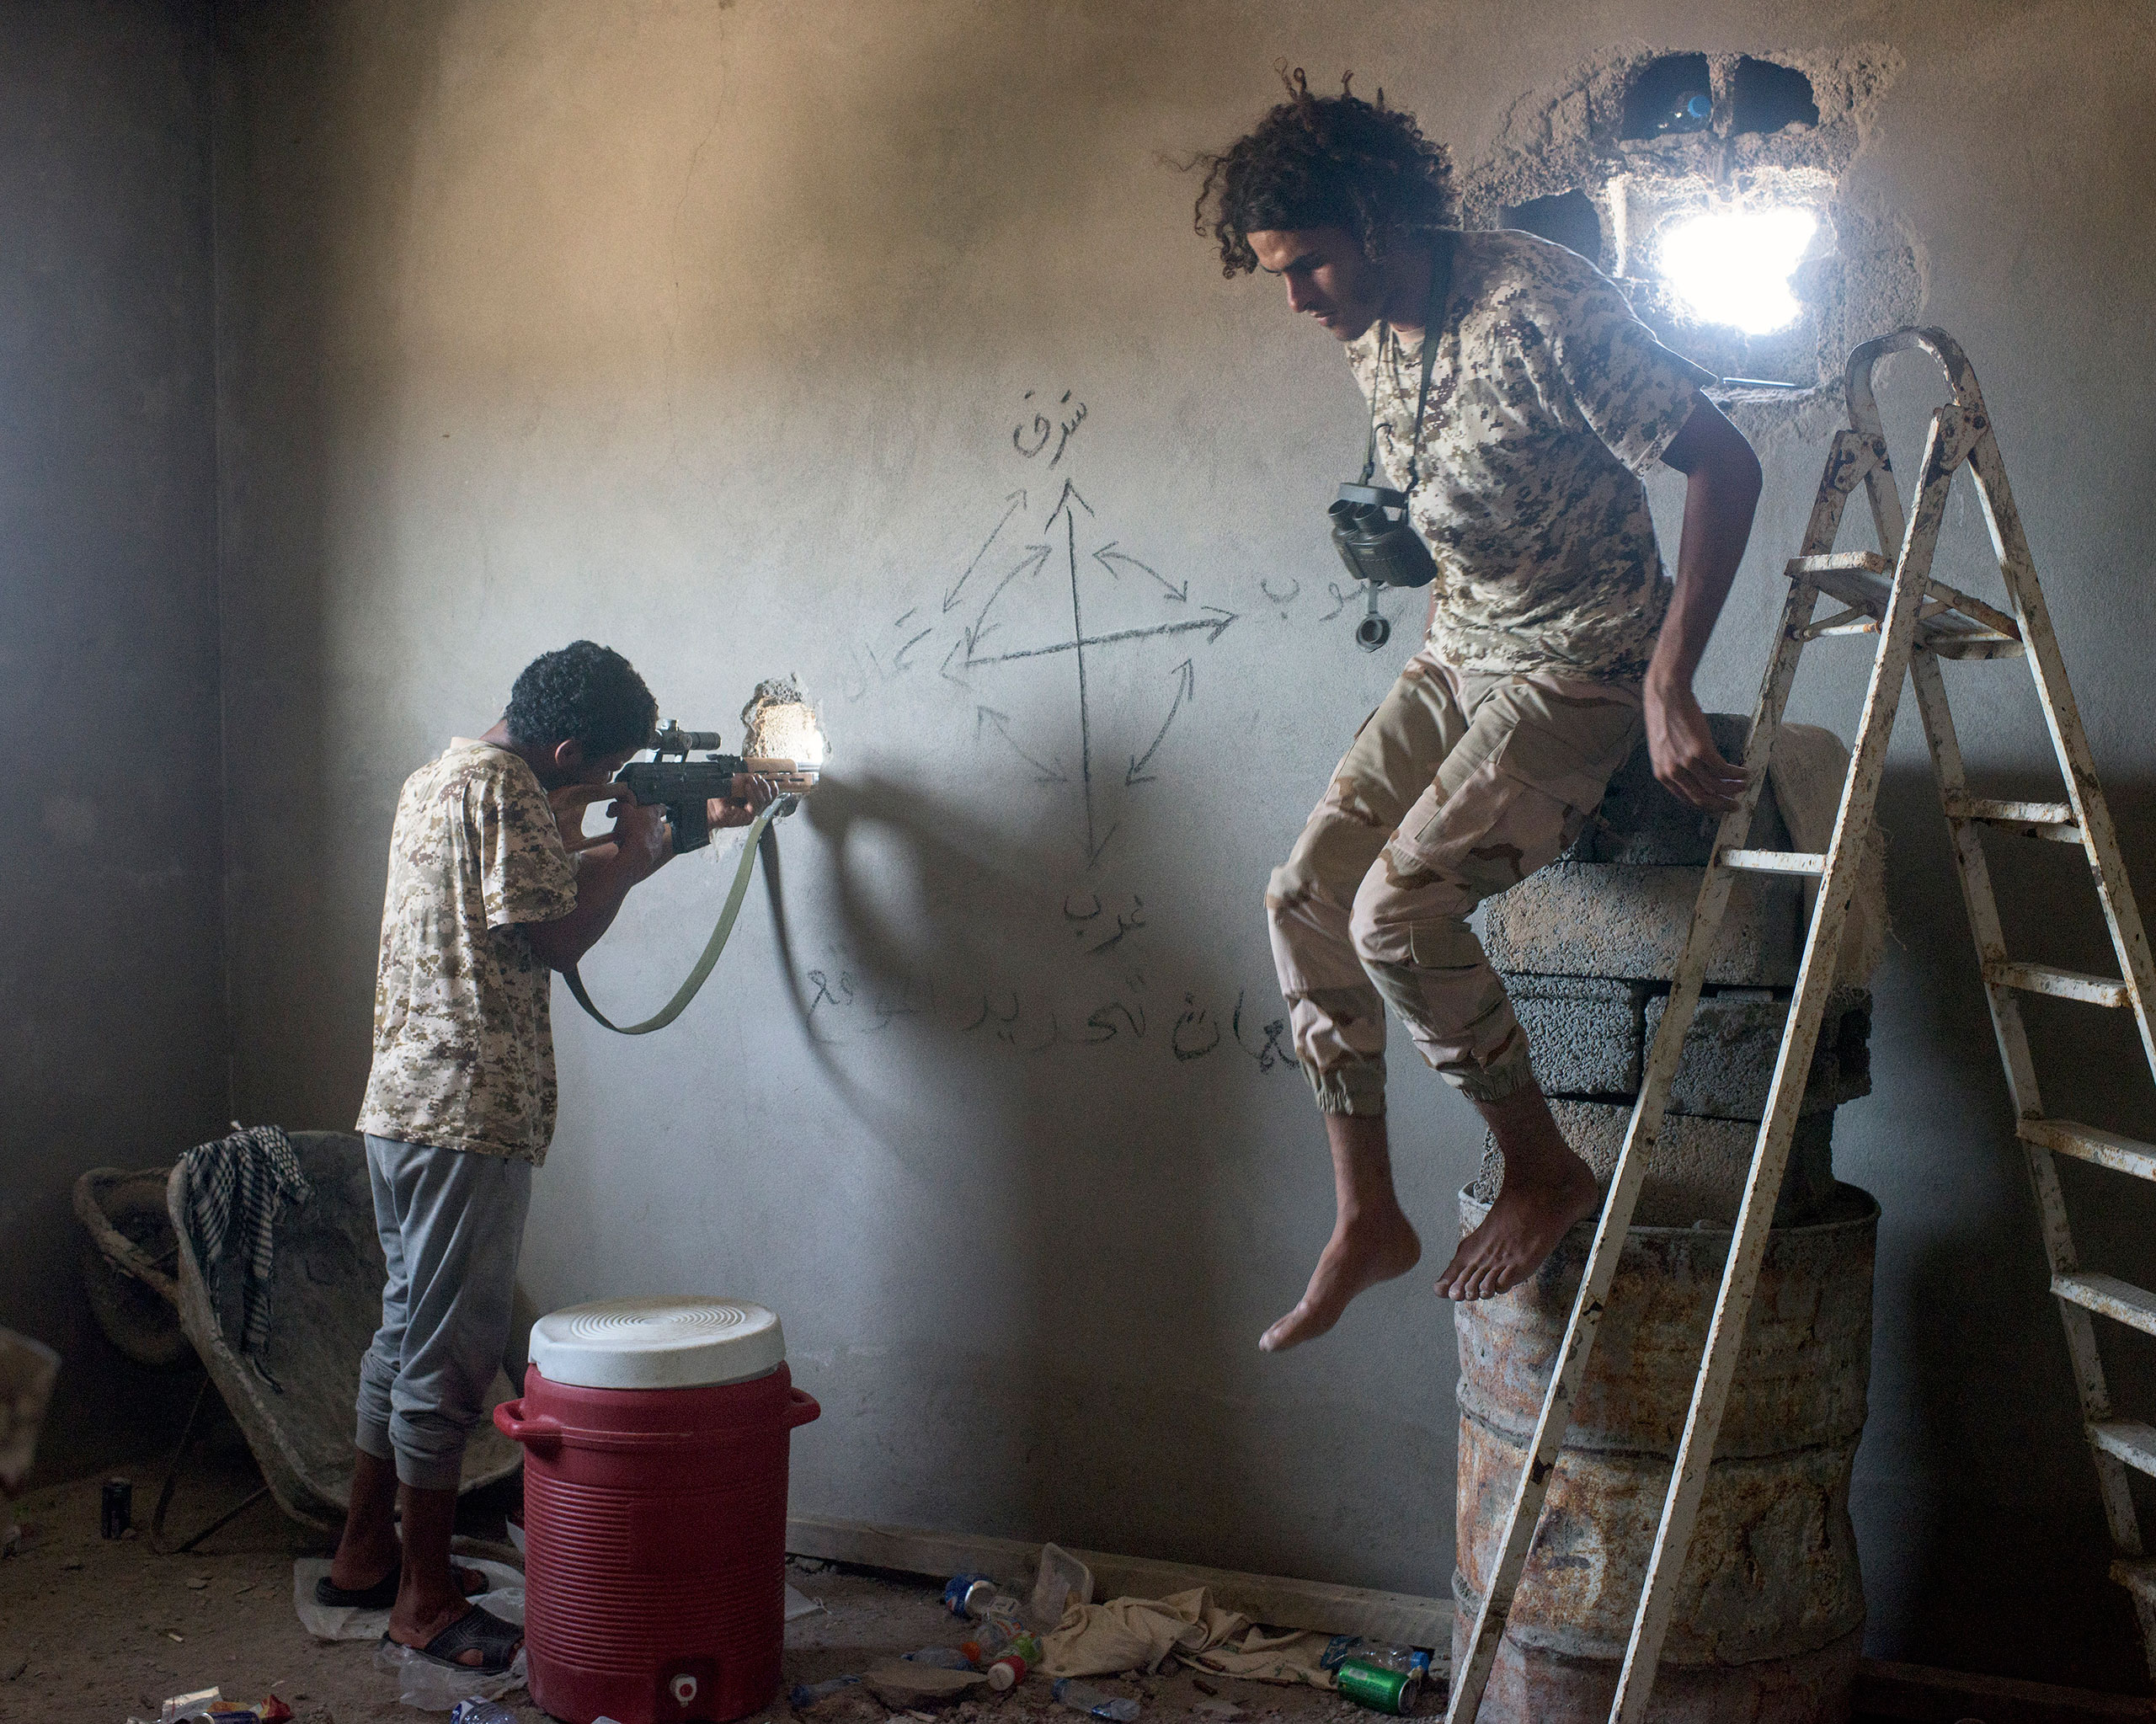 A Libyan sniper and his spotter in the Hay Dollar neighborhood, Sirt, Libya, July 2016.From  Inside ISIS' Last Bastion in Libya